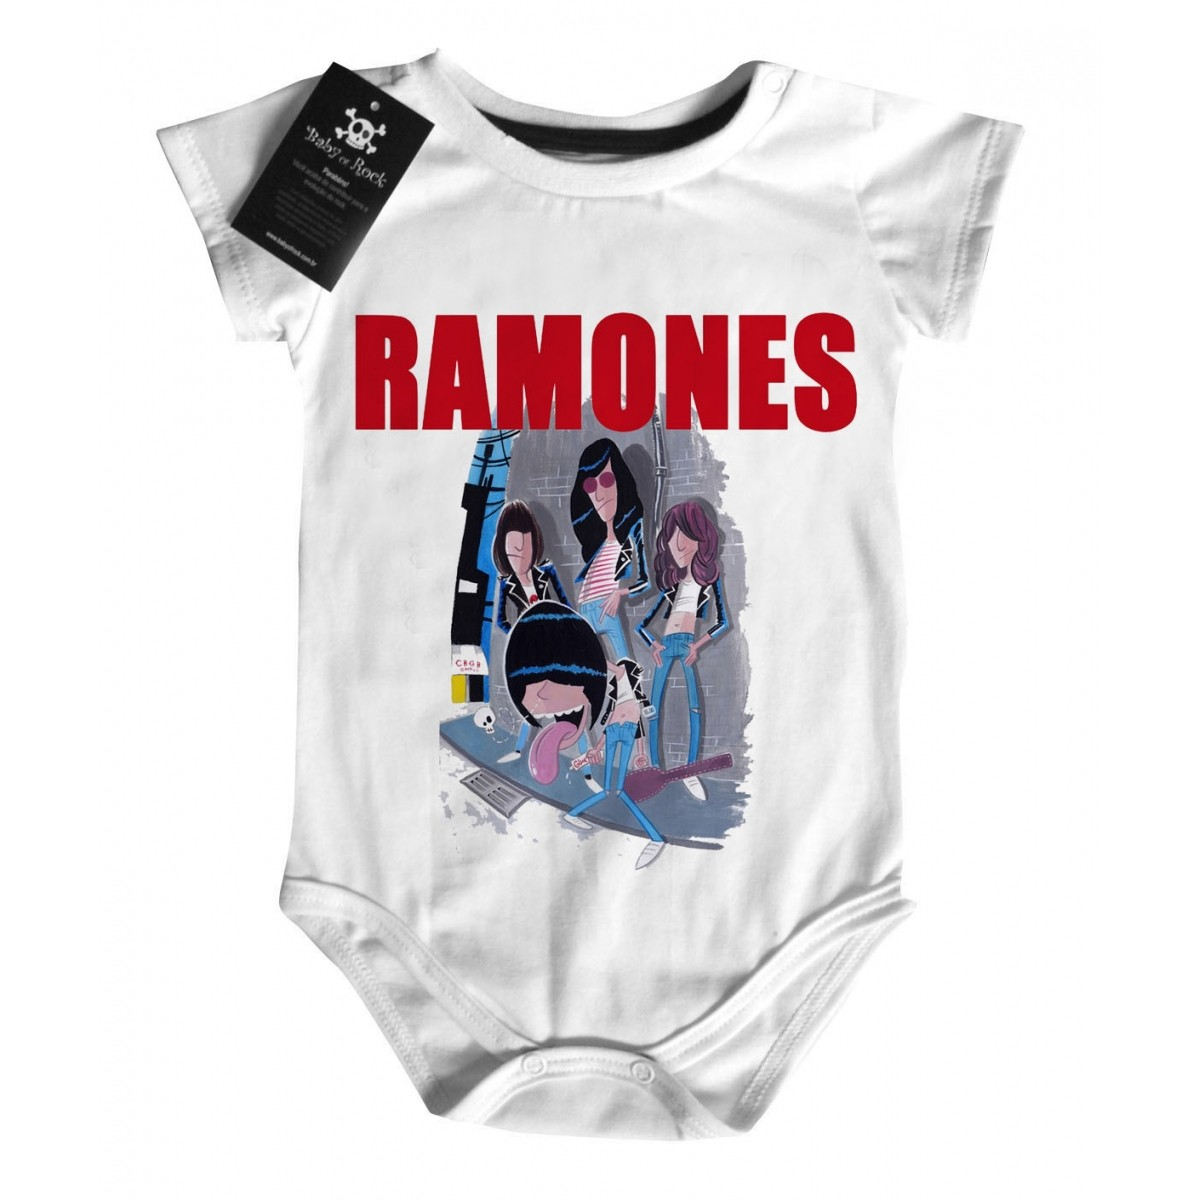 Body de Rock para Bebê do RAMONES - Caricature  White  - Baby Monster - Body Bebe